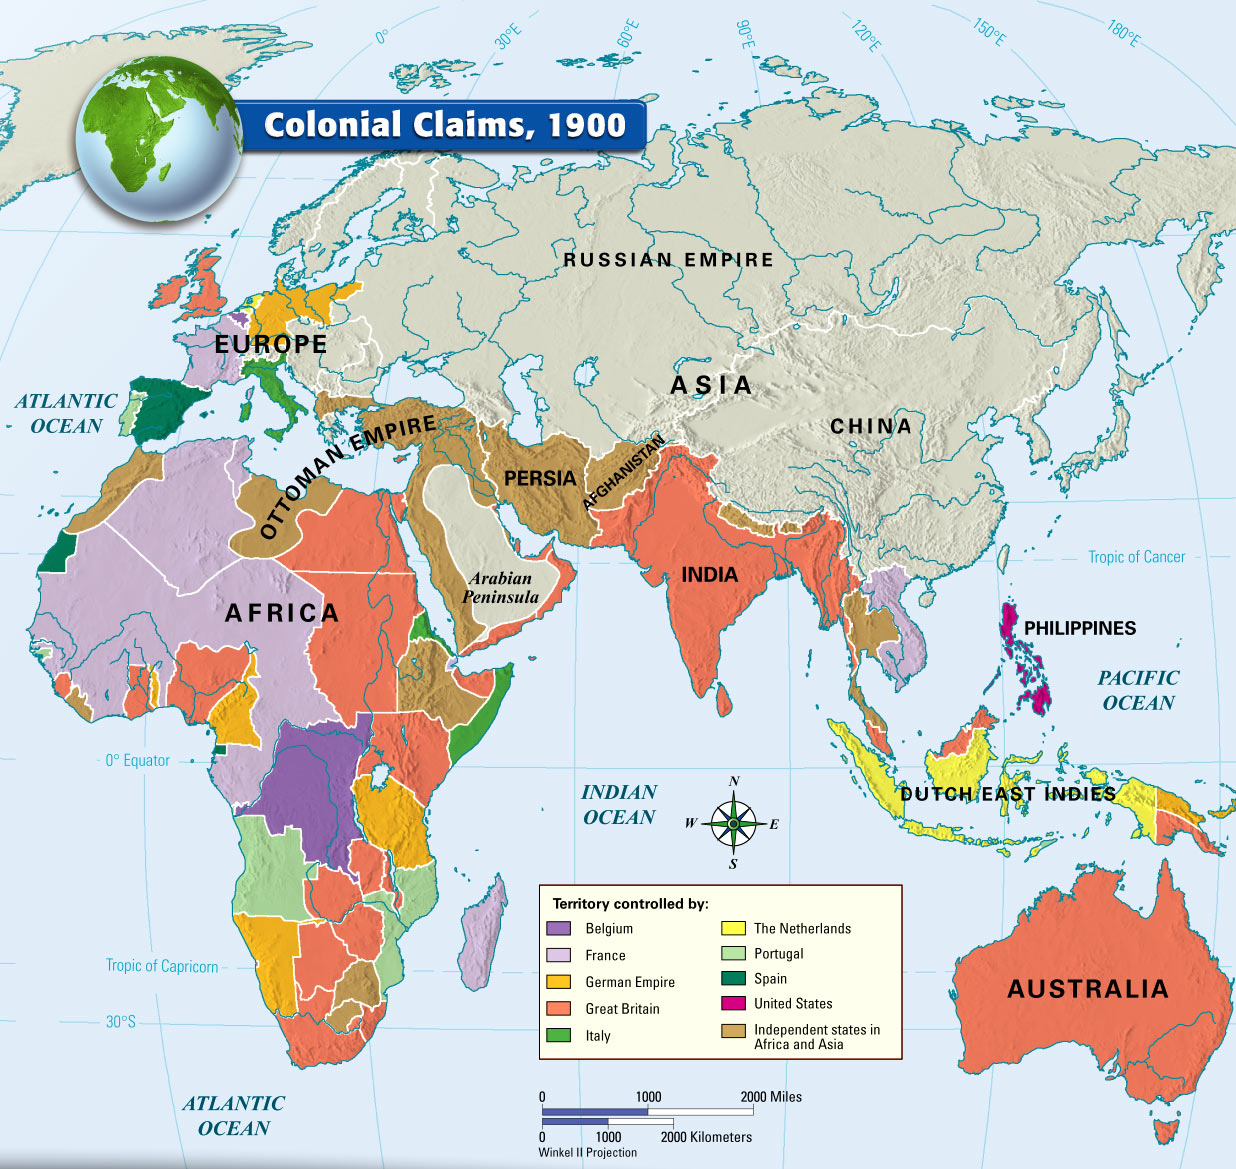 1800 S Colonial Scene On Demand: Europe's Colonies In The Late 1800s